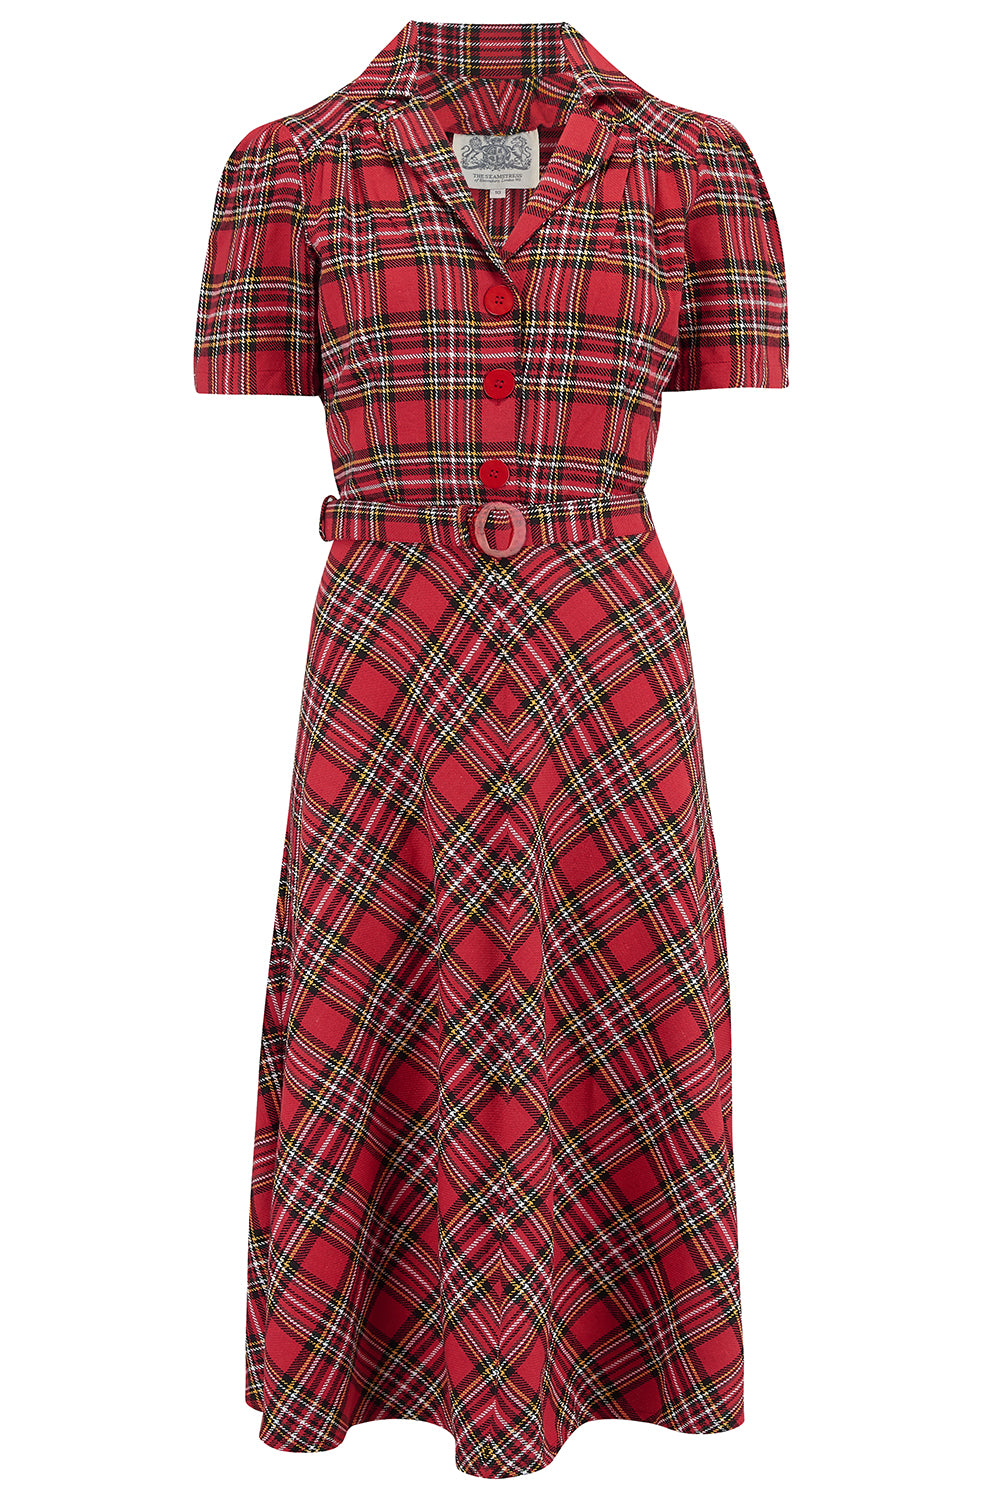 1930s Dresses, Shoes, Clothing in the UK Lisa Tea Dress in Traditional Red Tartan Authentic 1940s Vintage Style £79.00 AT vintagedancer.com